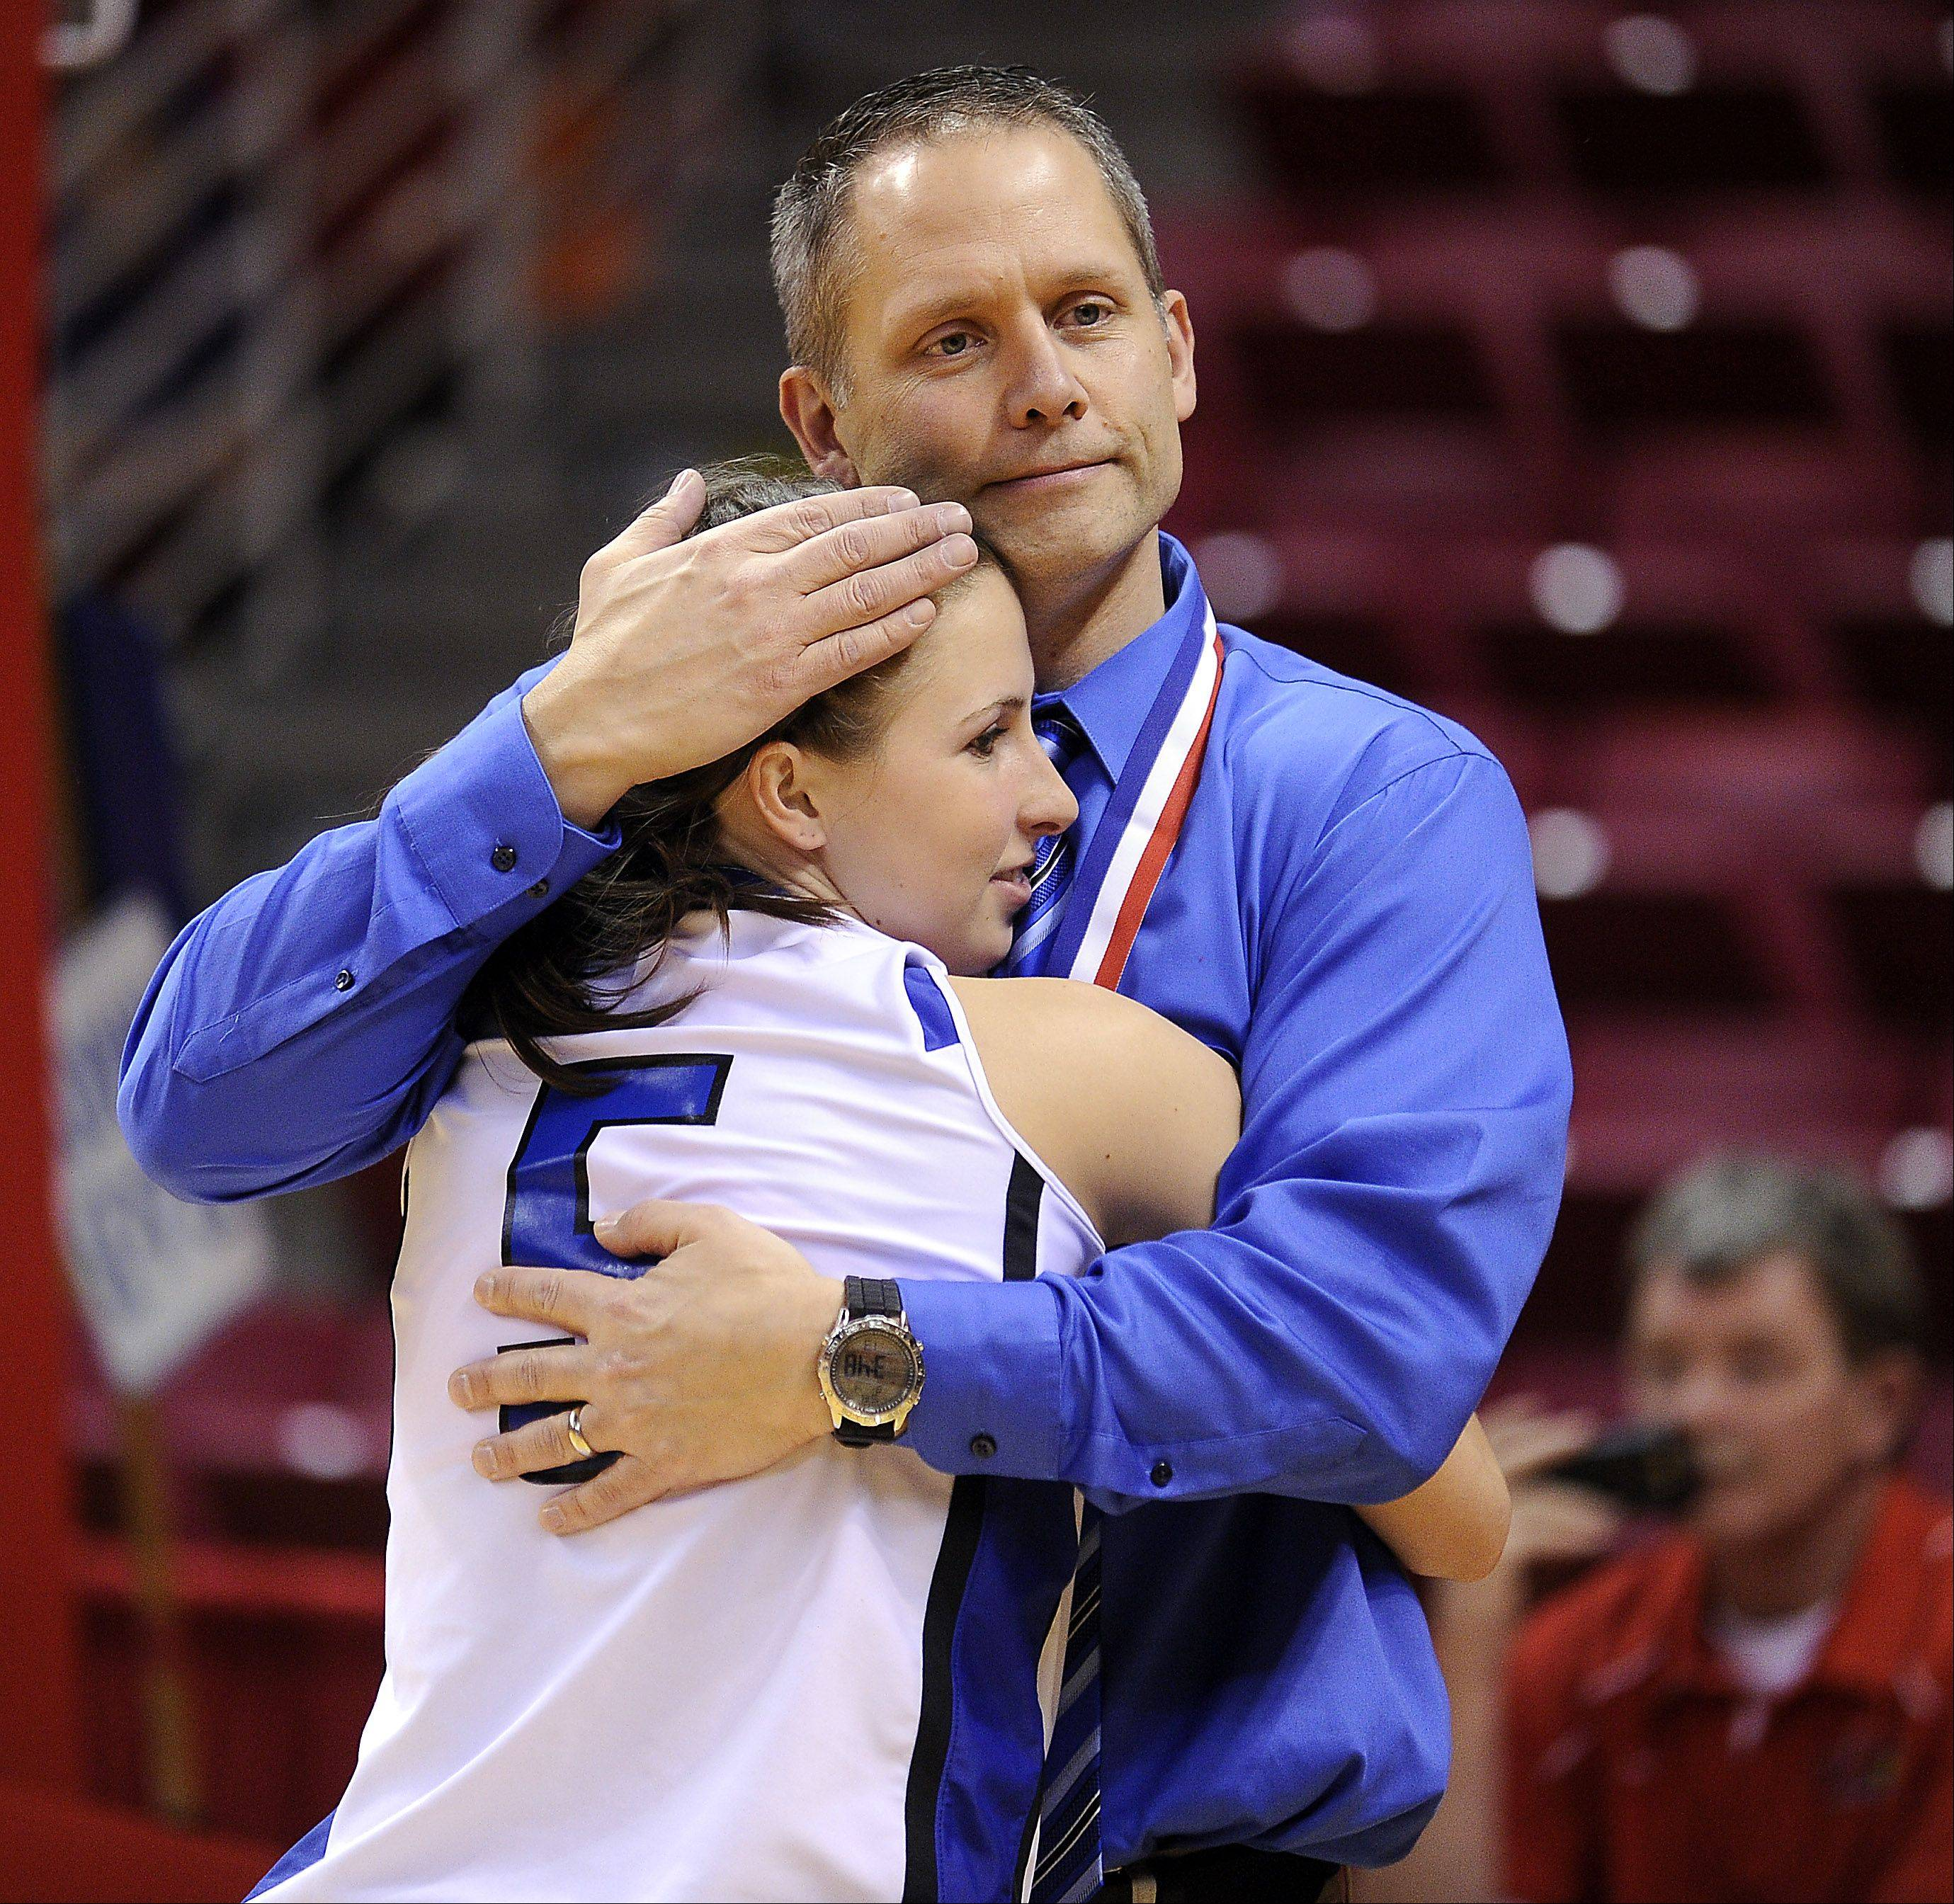 Vernon Hills' coach Paul Brettner hugs his player Julie Pecht after their loss to Montini in the 2012 IHSA Class 3A Girls basketball Tournament in Normal, Illinois on Saturday.